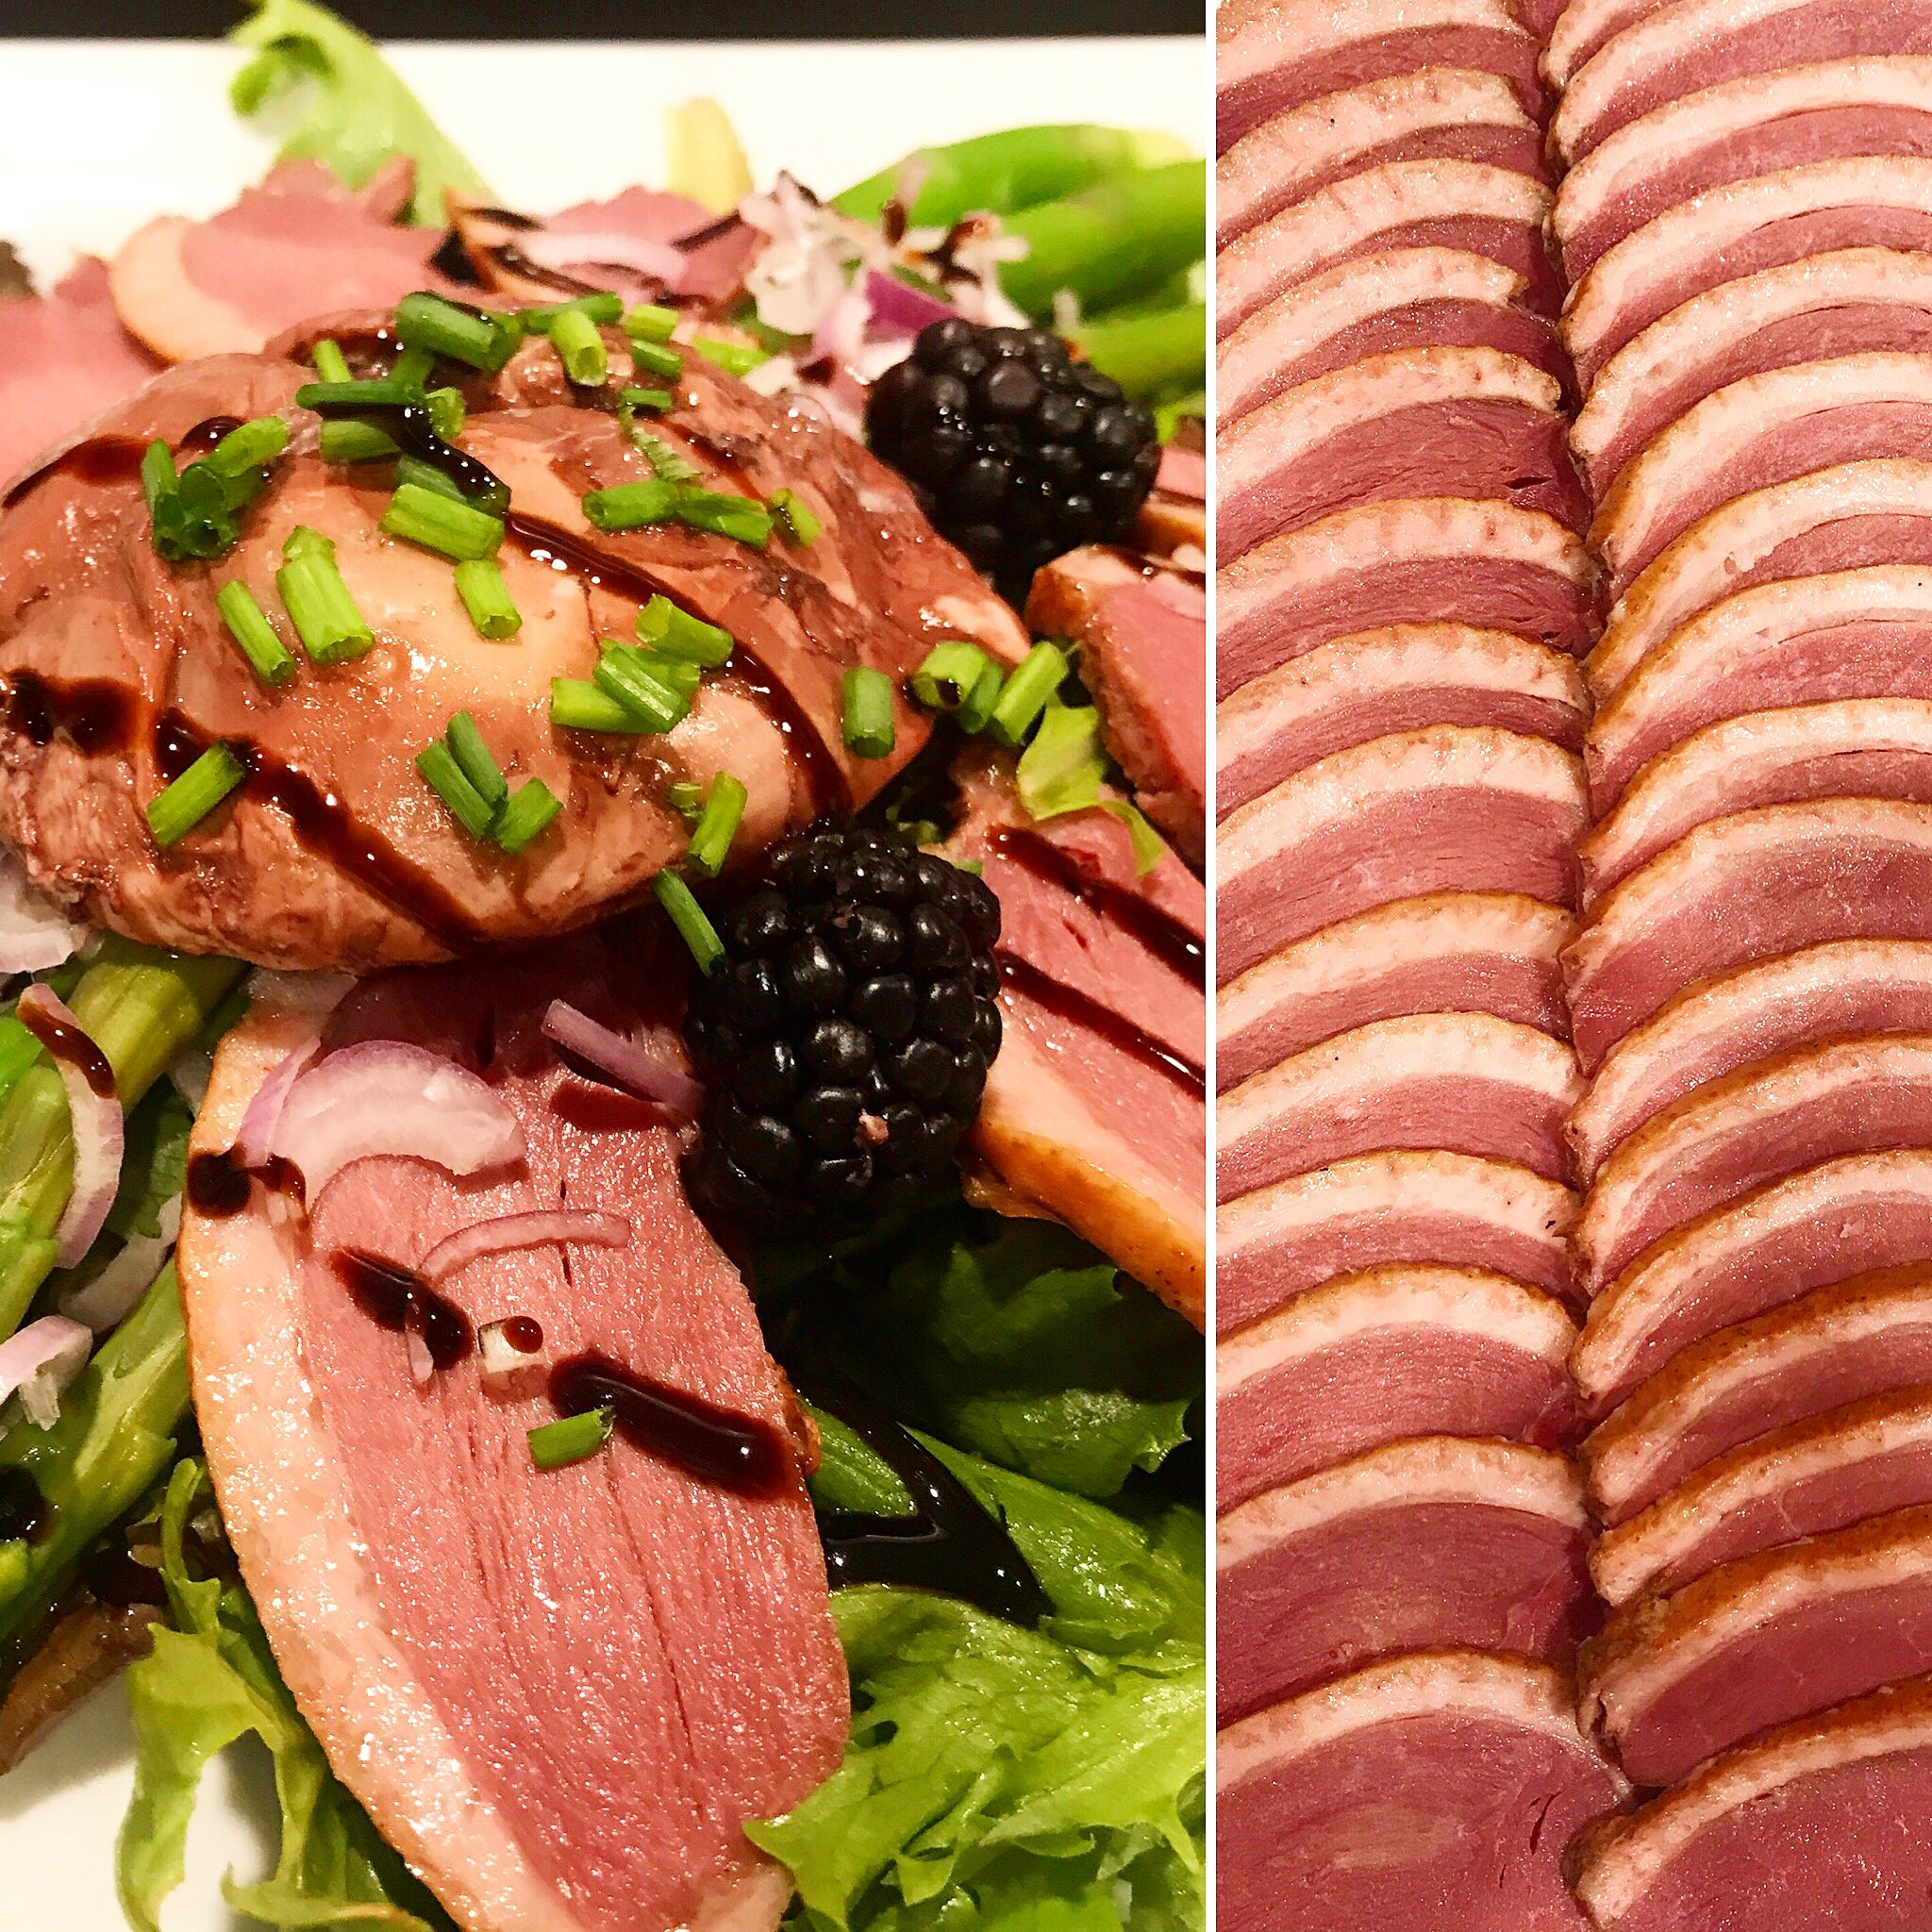 Smoked and cooked duck breast